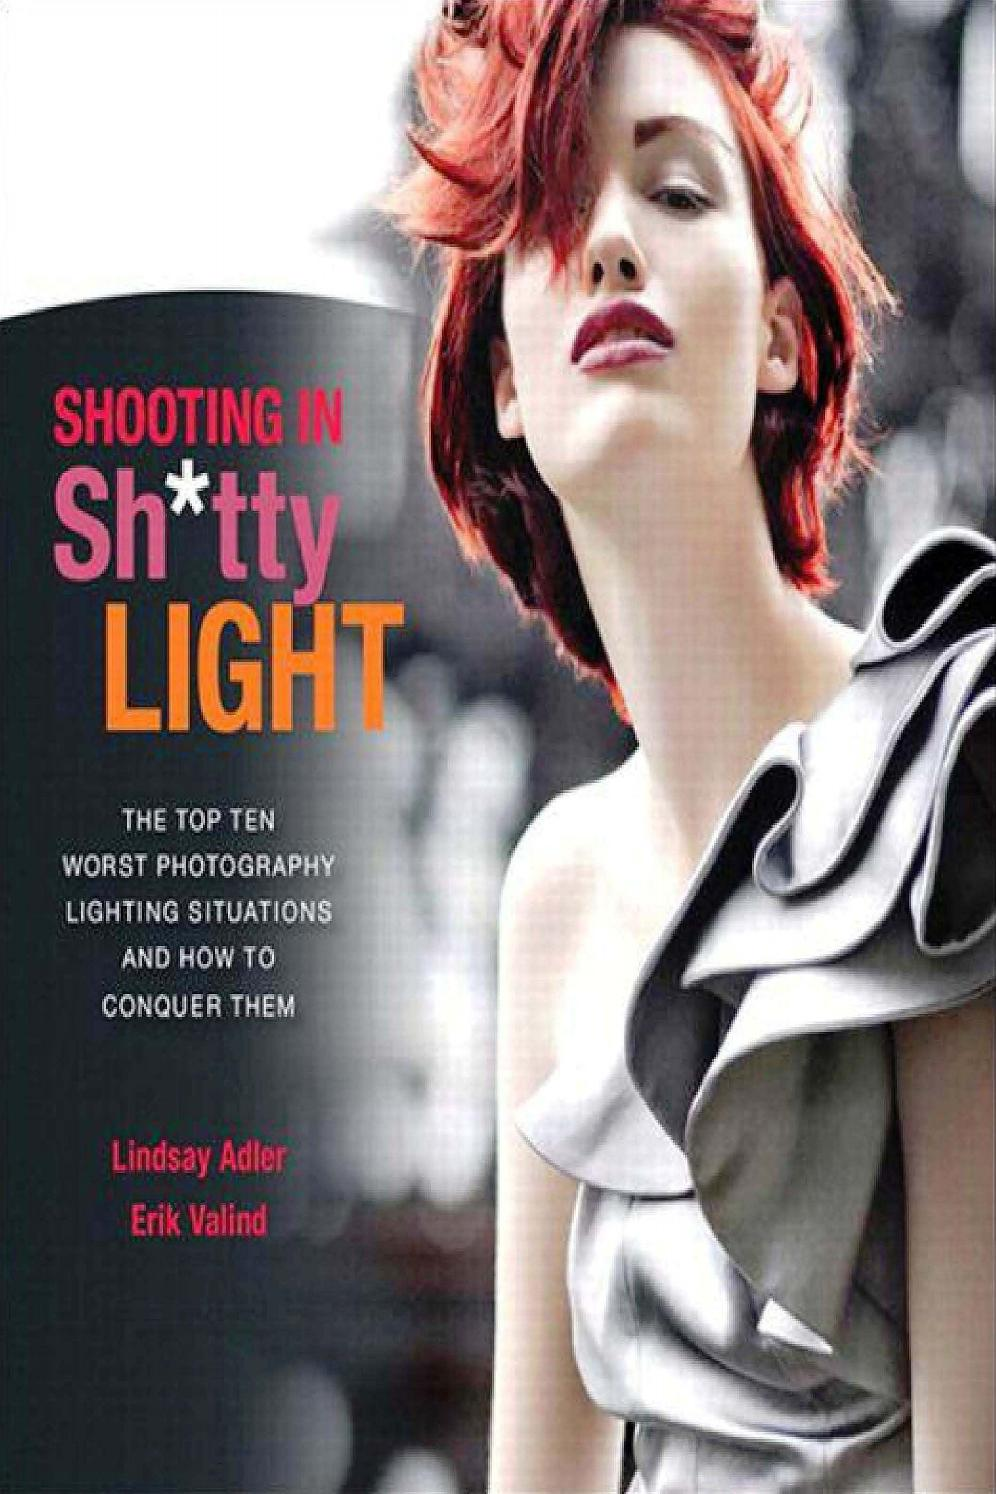 Shooting in Sh*tty Light by Lindsay Adler & Erik Valind